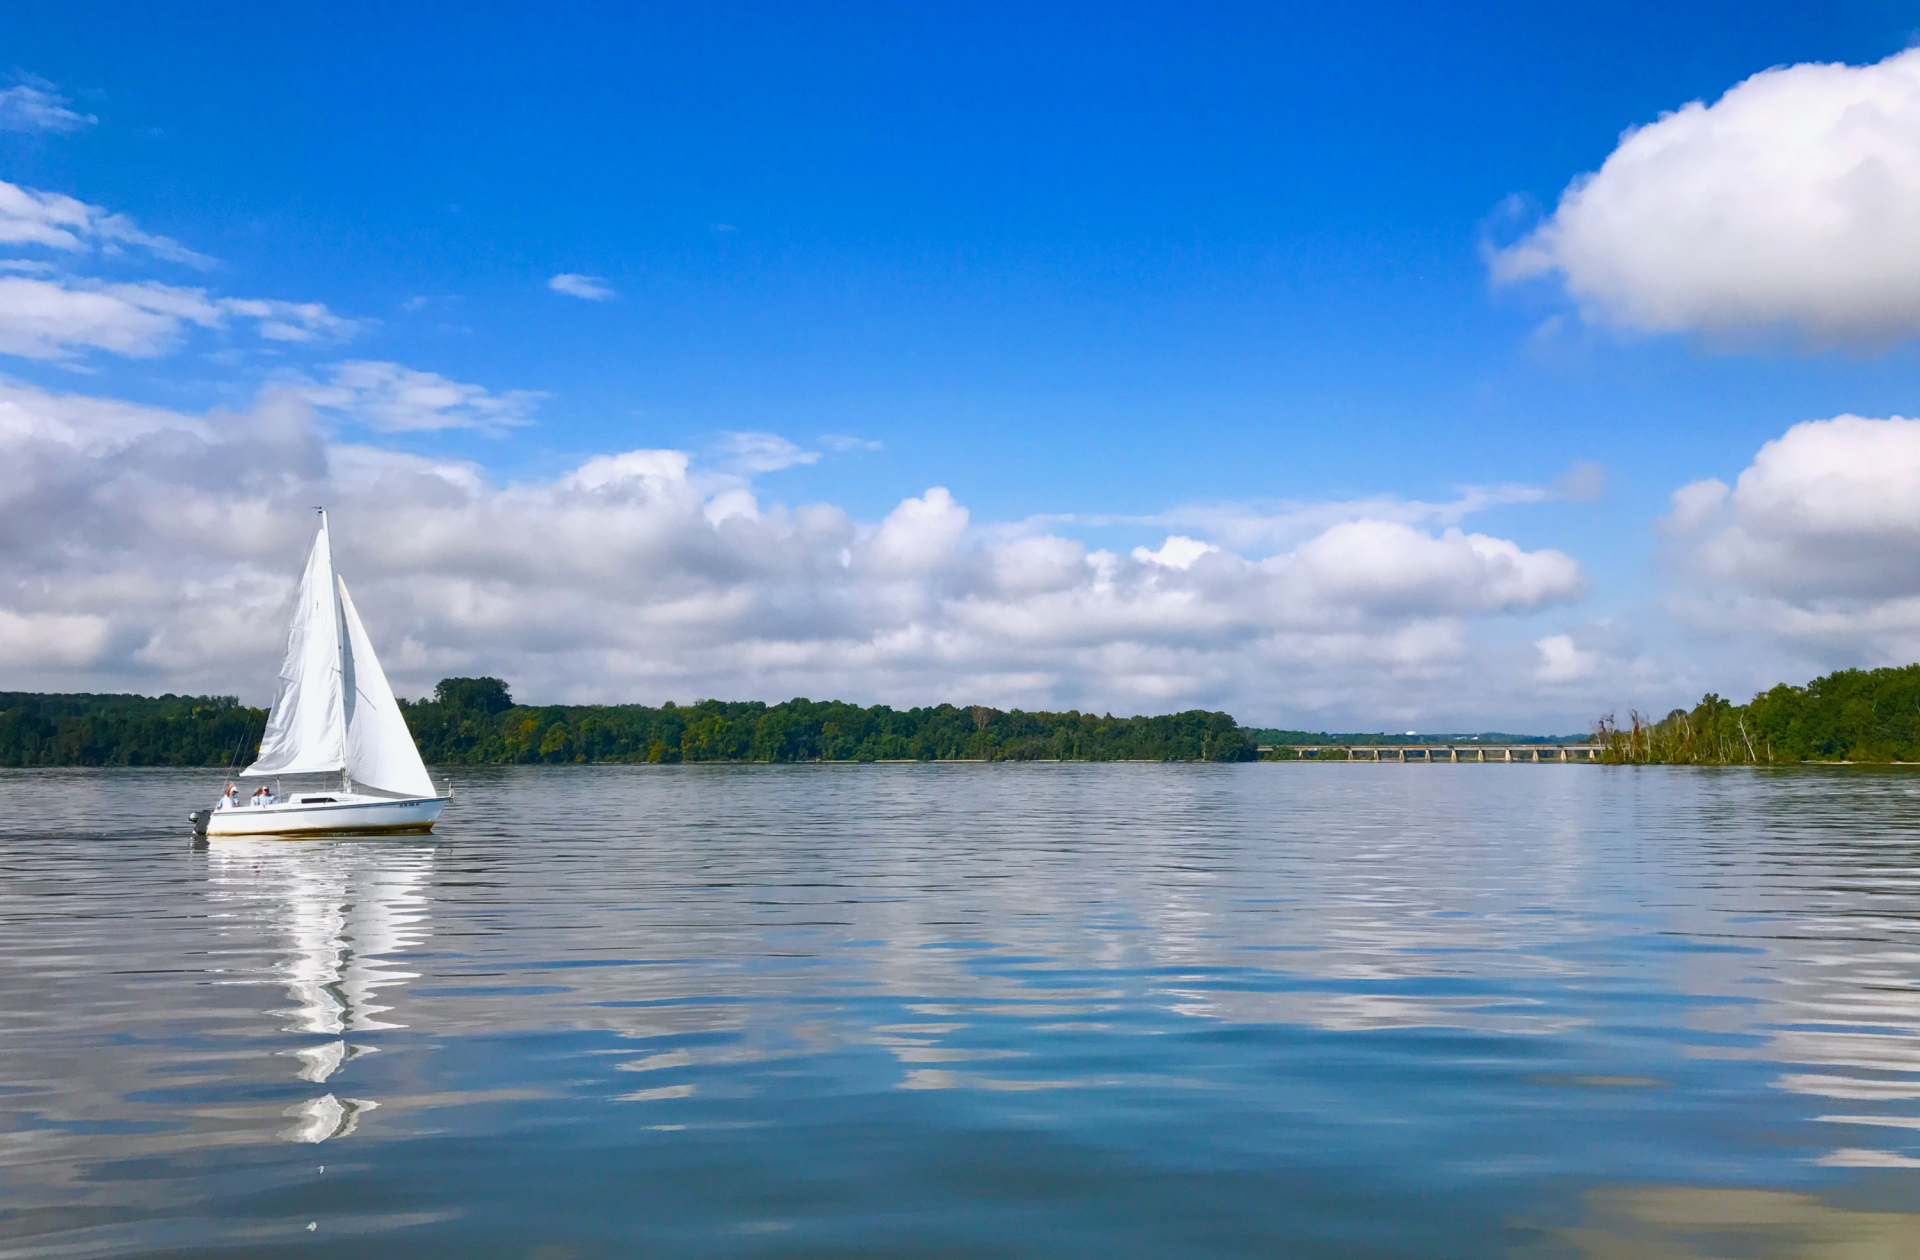 Northern Virginia Sailing School